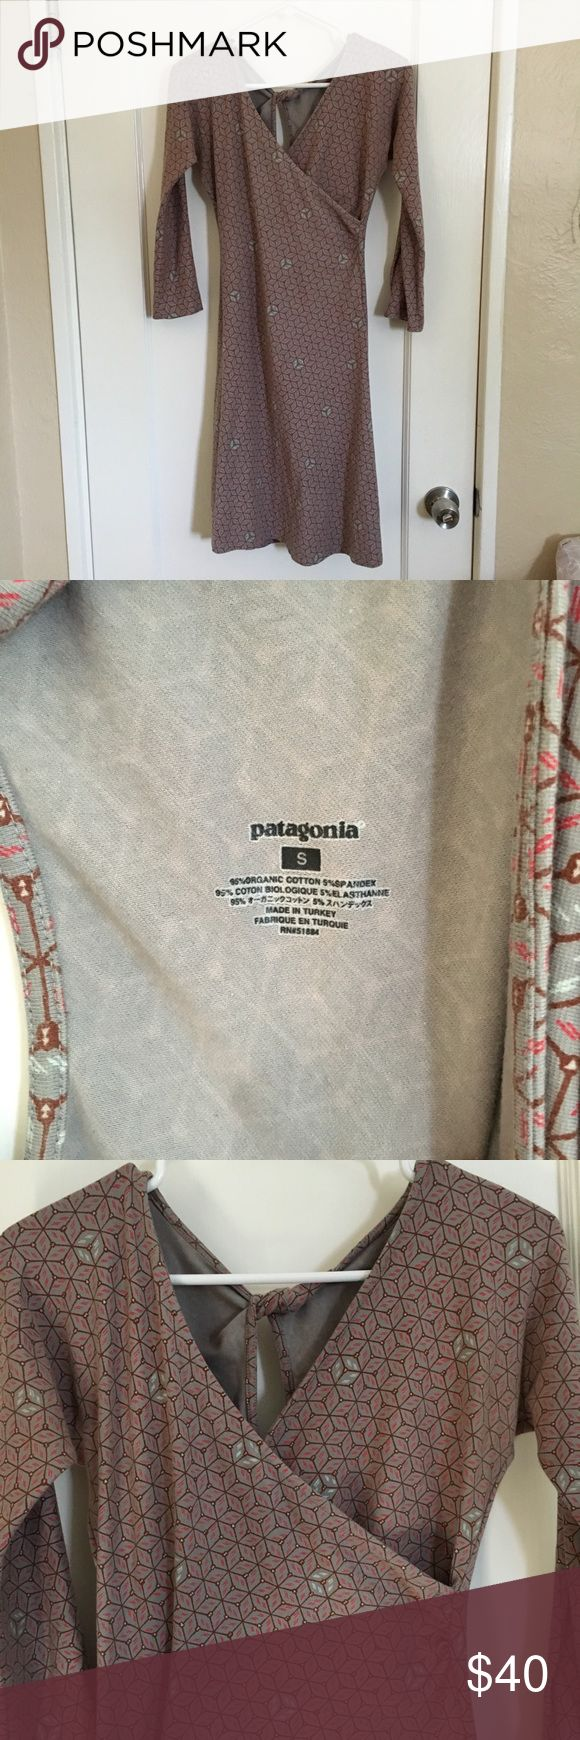 Patagonia Dress Patagonia dress size small in good pre-owned condition. Geometric pattern, mid-length. Keyhole back, v-neck front. Patagonia Dresses Midi